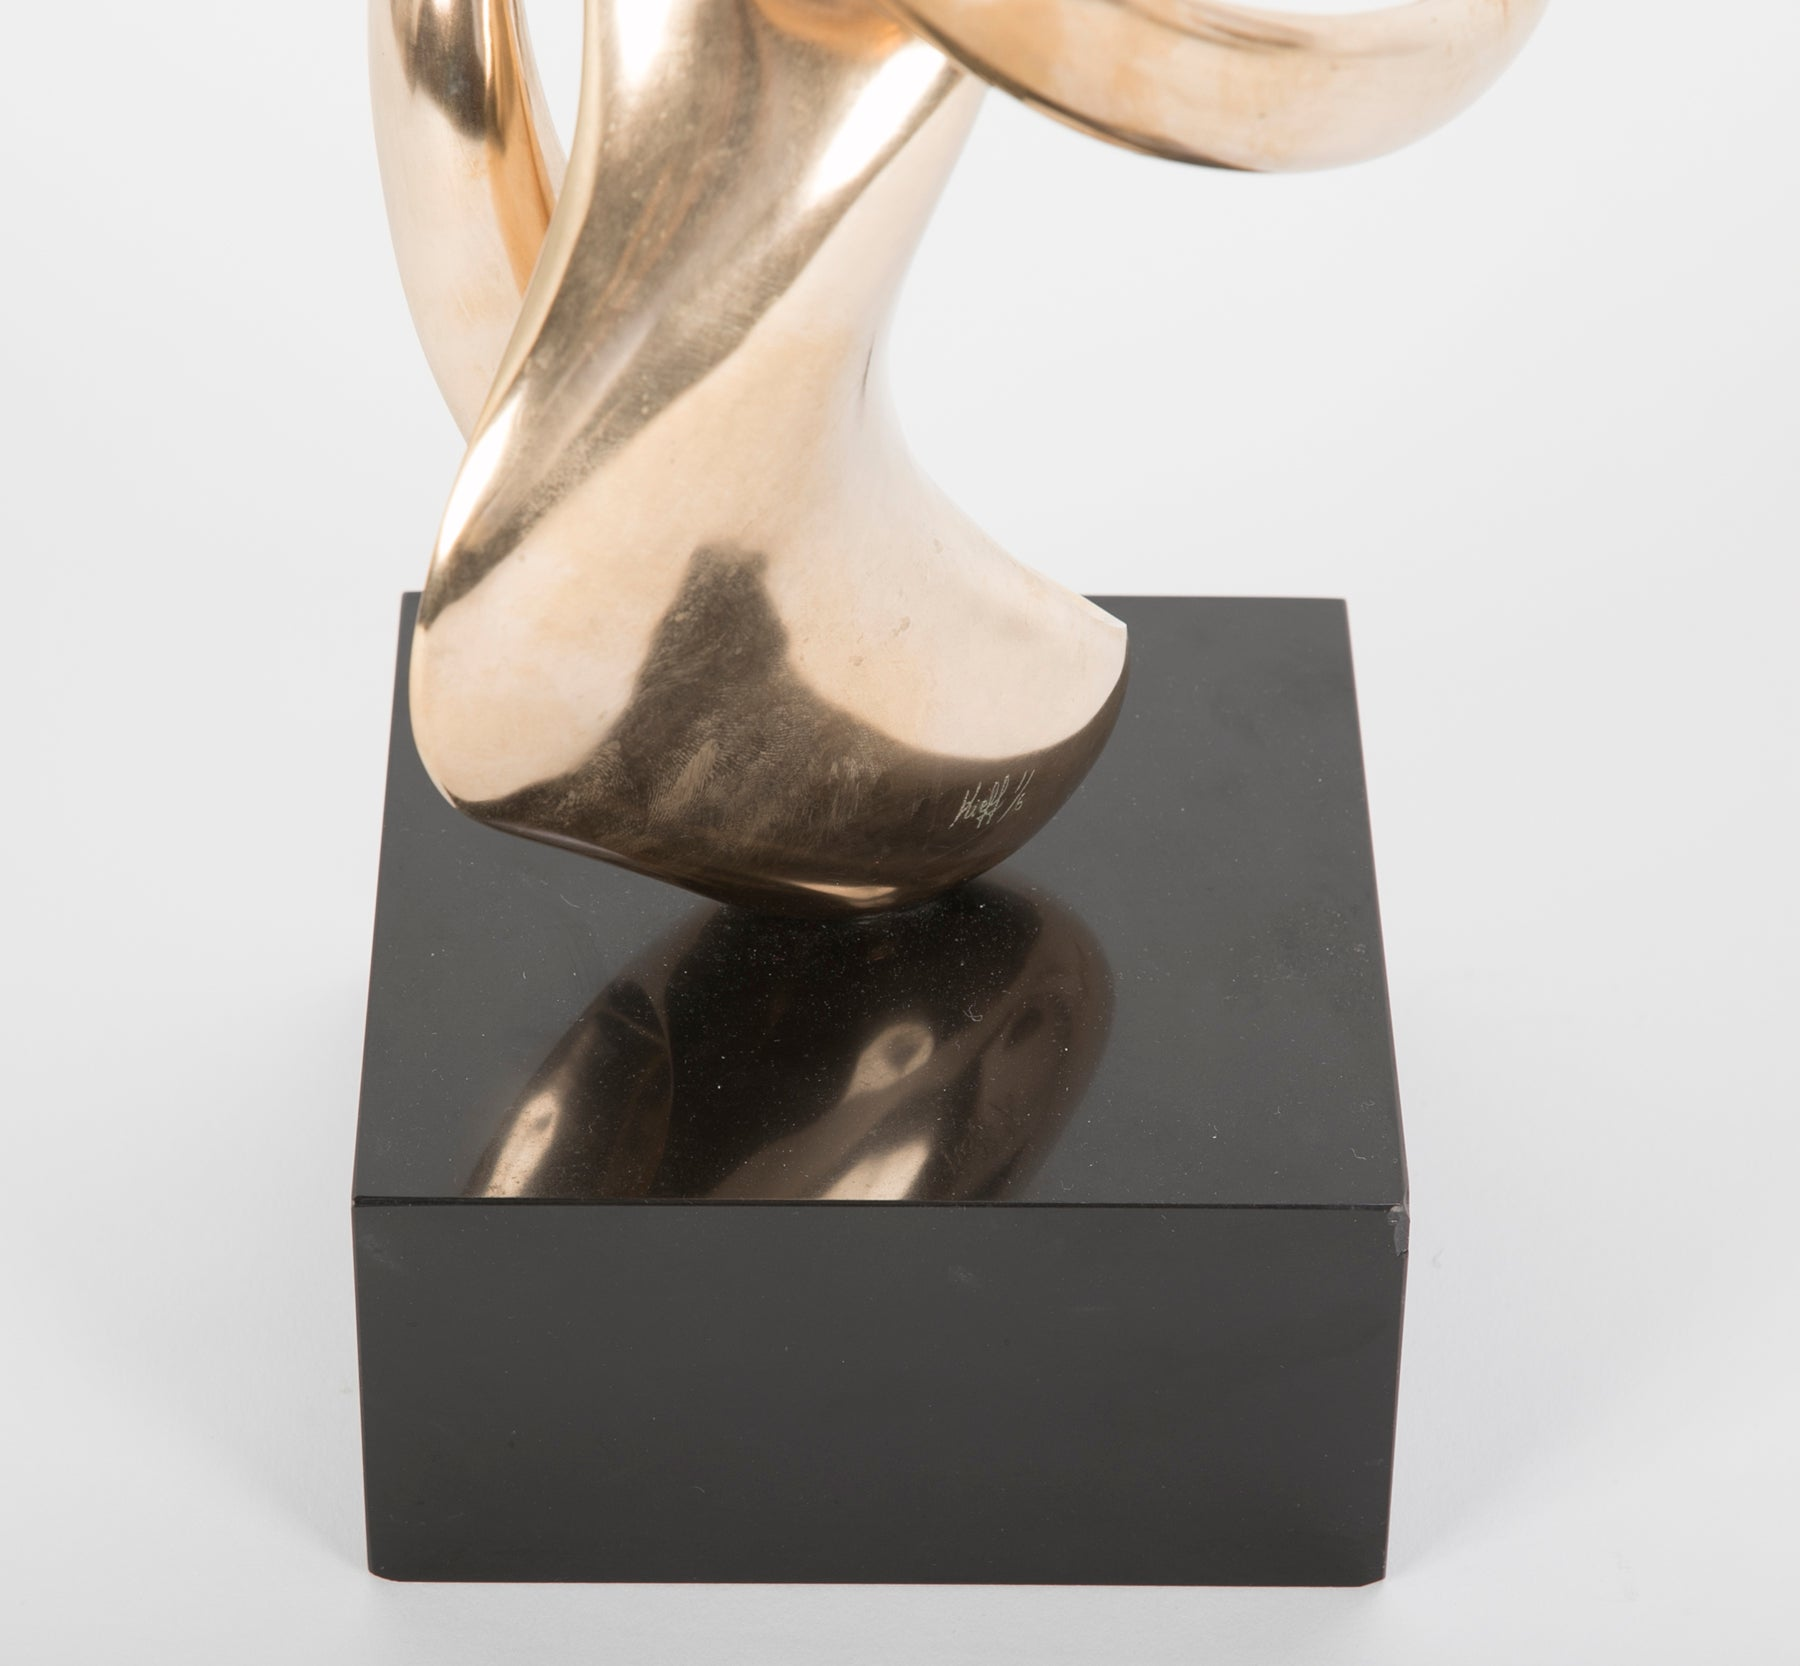 Bronze Sculpture by Kieff